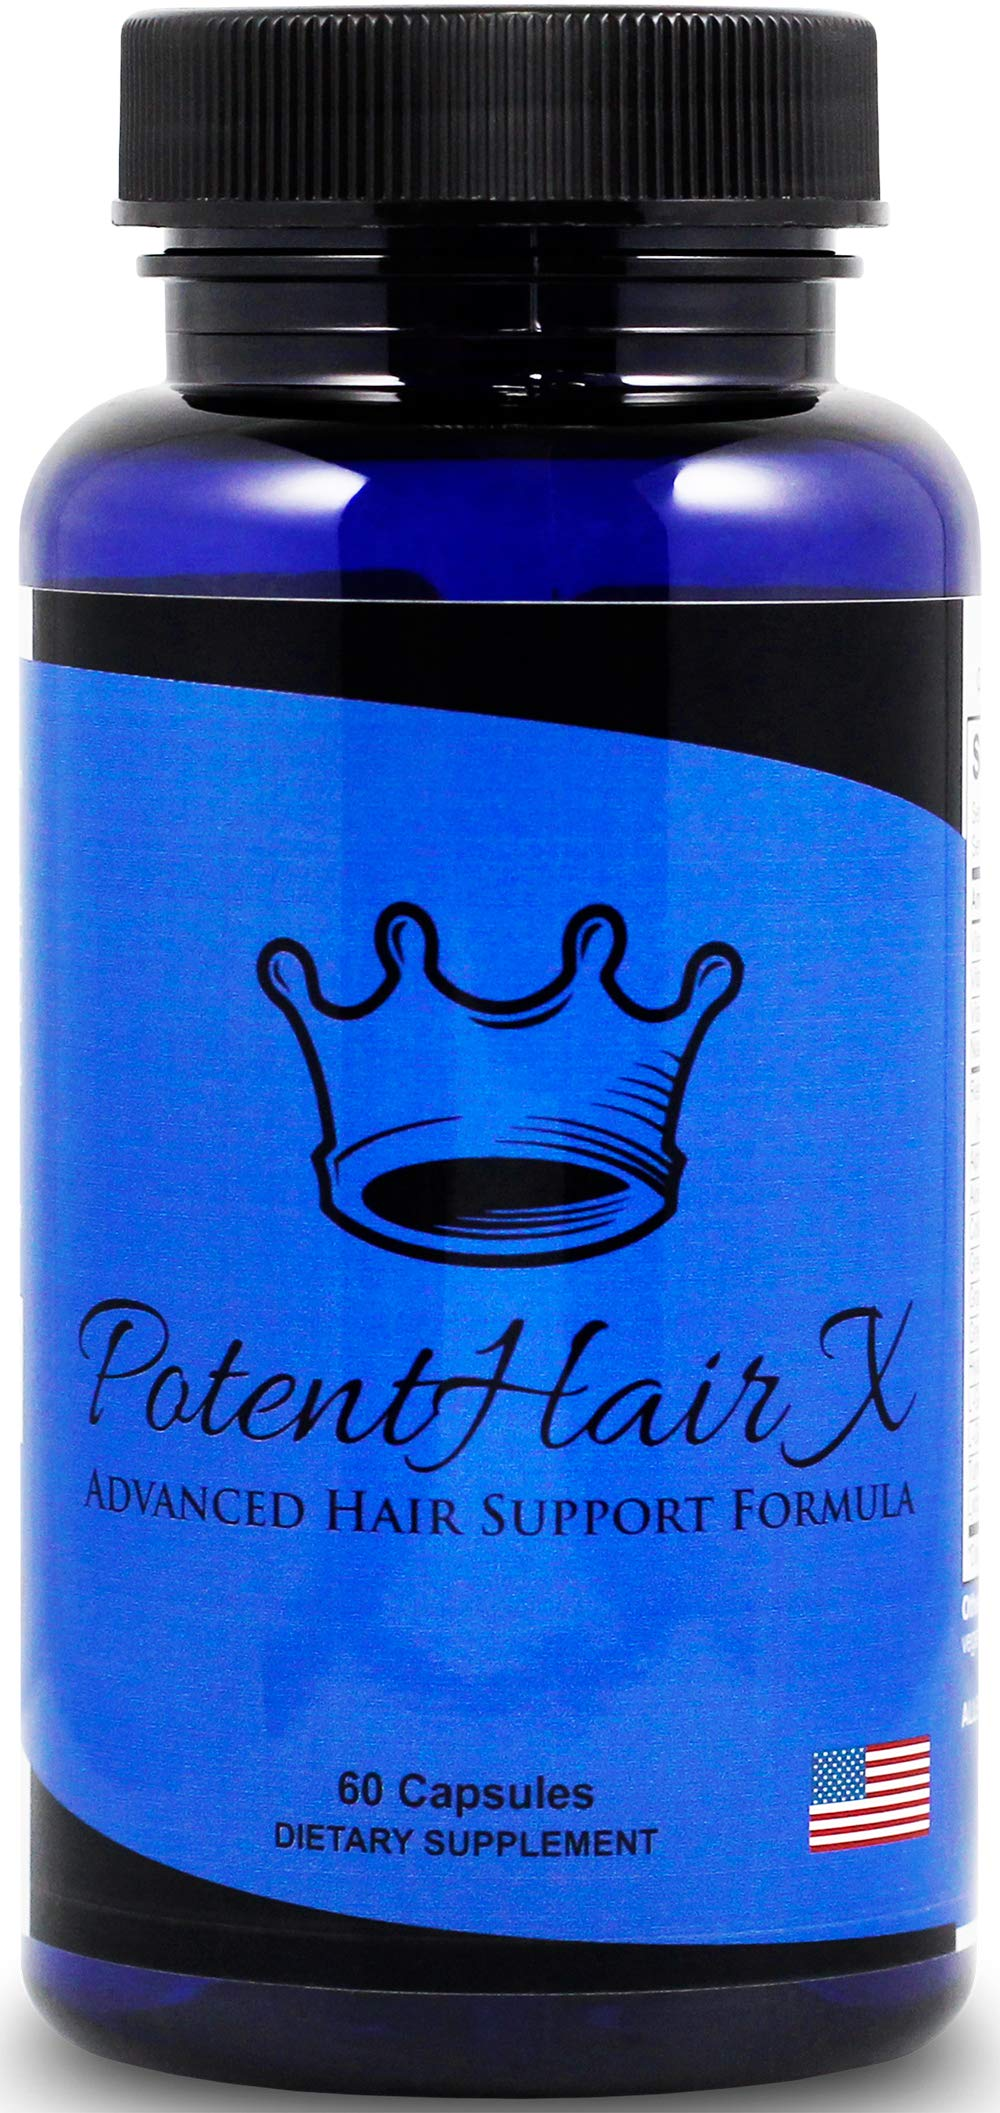 Potent Hair X: Natural DHT Blocker, Hair Growth Vitamins, Stops Hair Loss, Repairs Follicles and Promotes Hair Regrowth in Men and Women, All Hair Types, 30 Day Supply by Potent Hair X